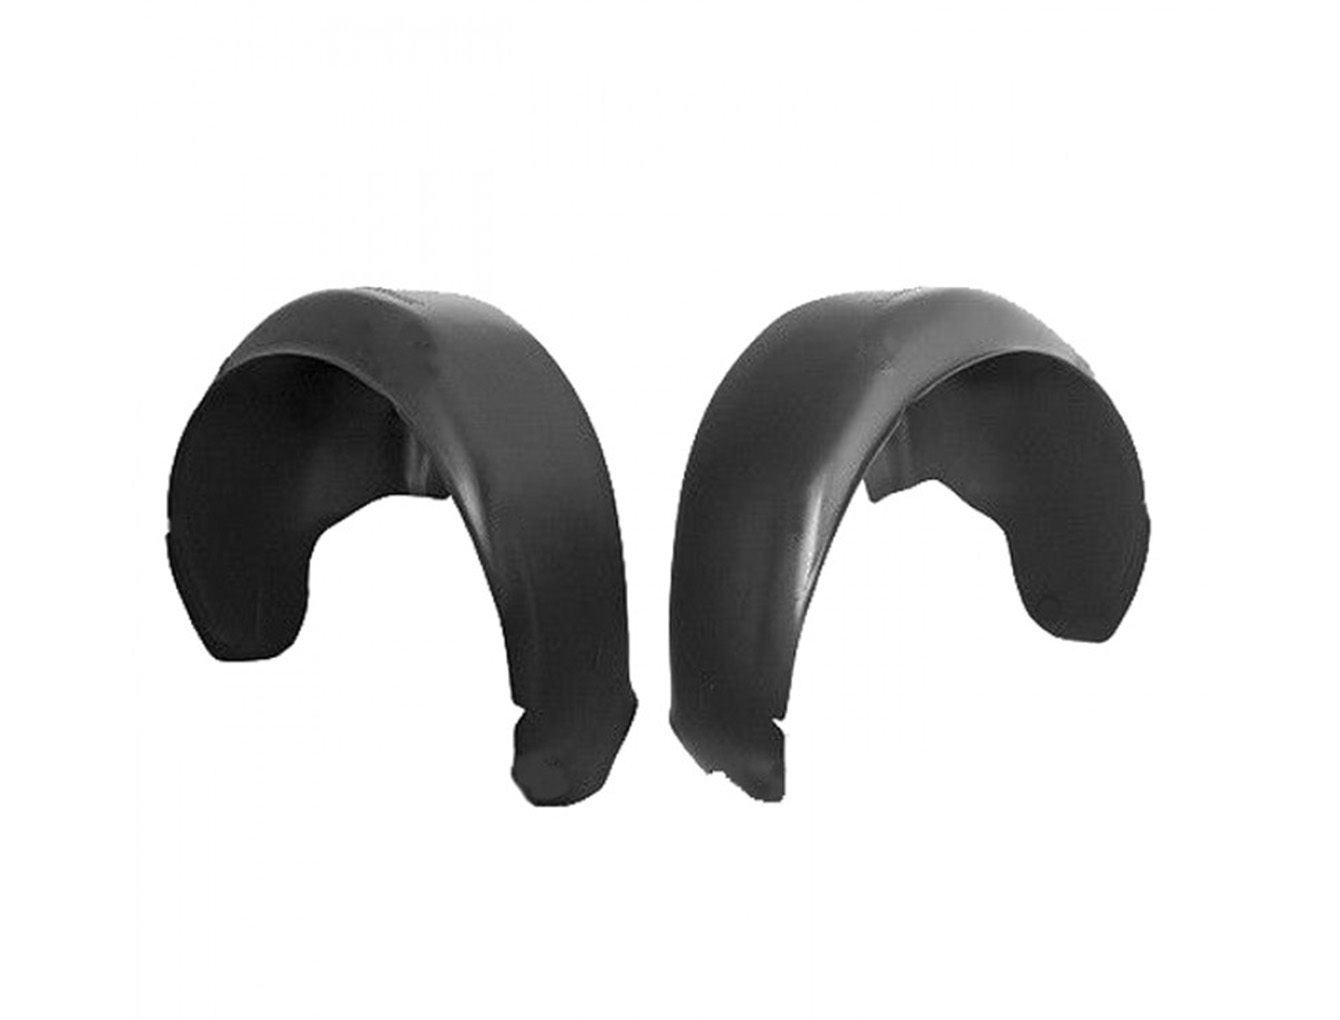 Lada Priora 2170 Front Splash Guard Set